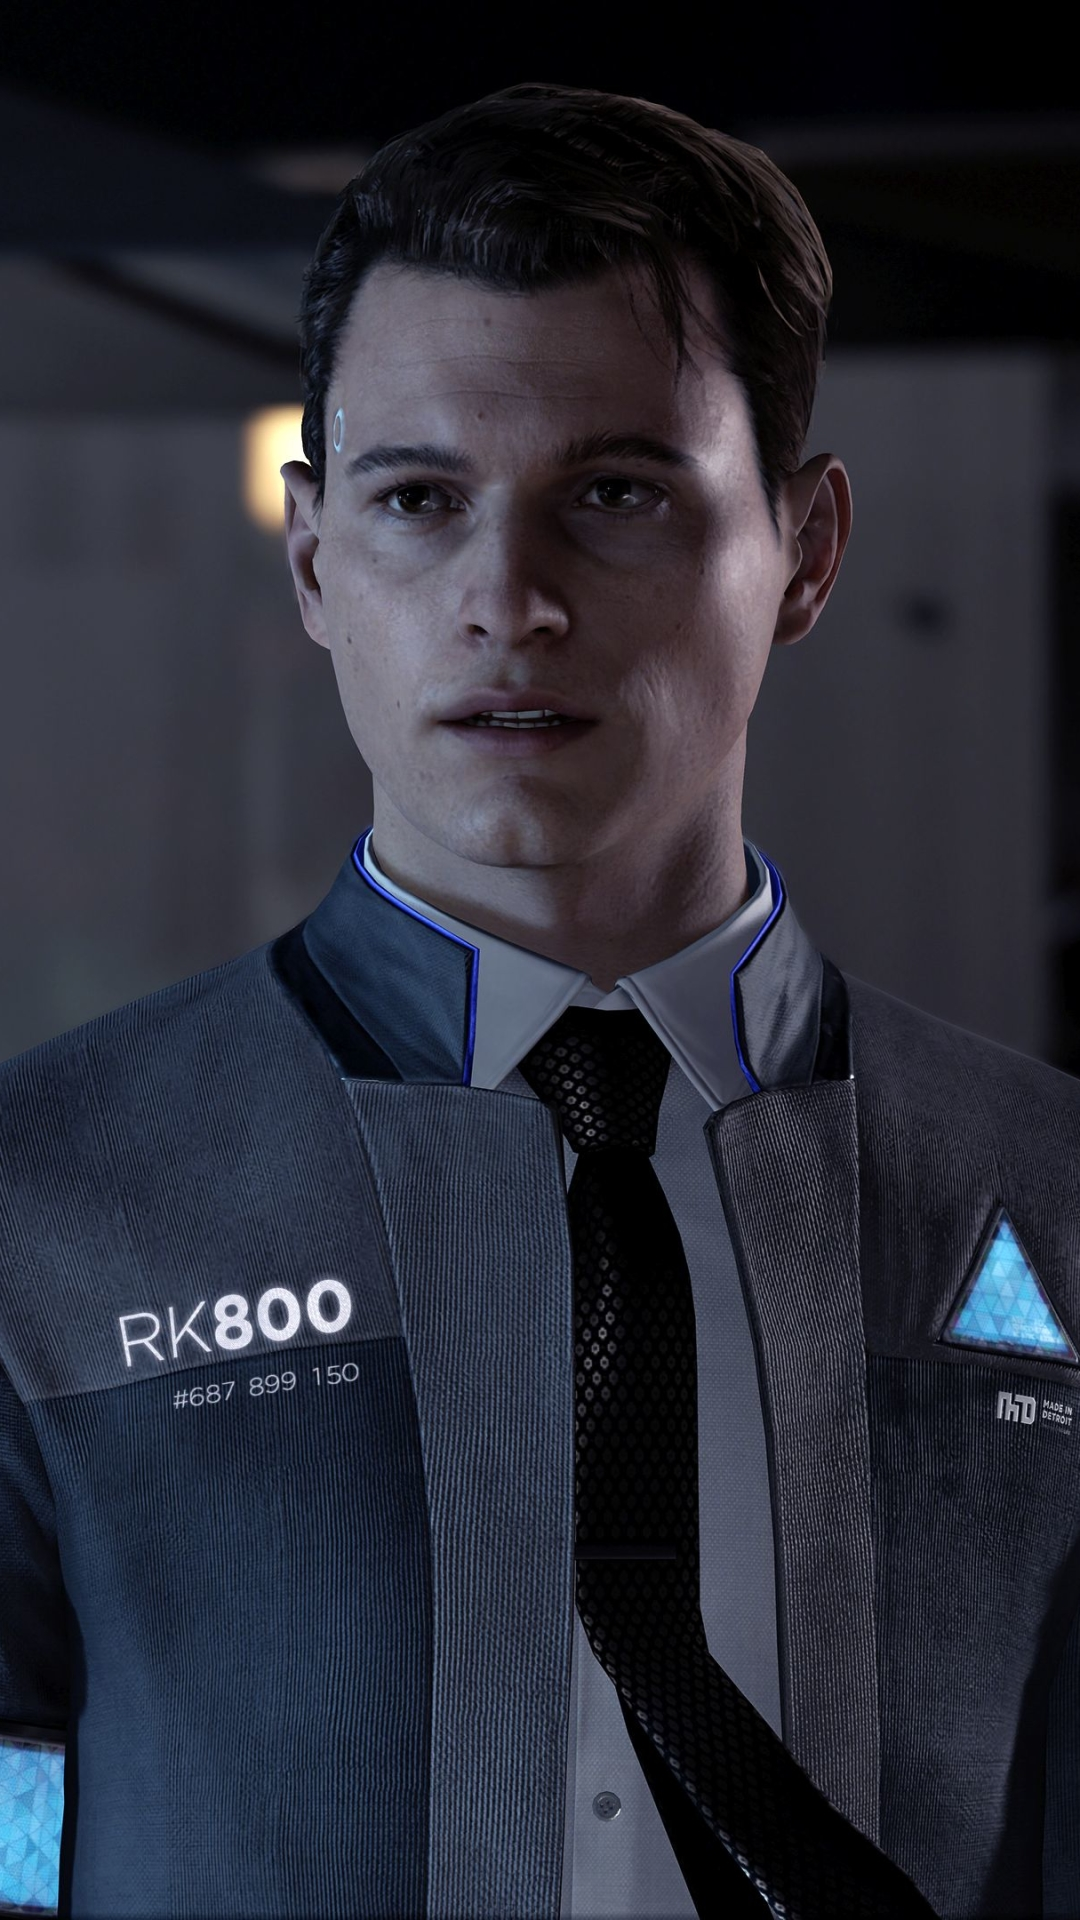 Video Game Detroit Become Human 1080x1920 Wallpaper Id 726469